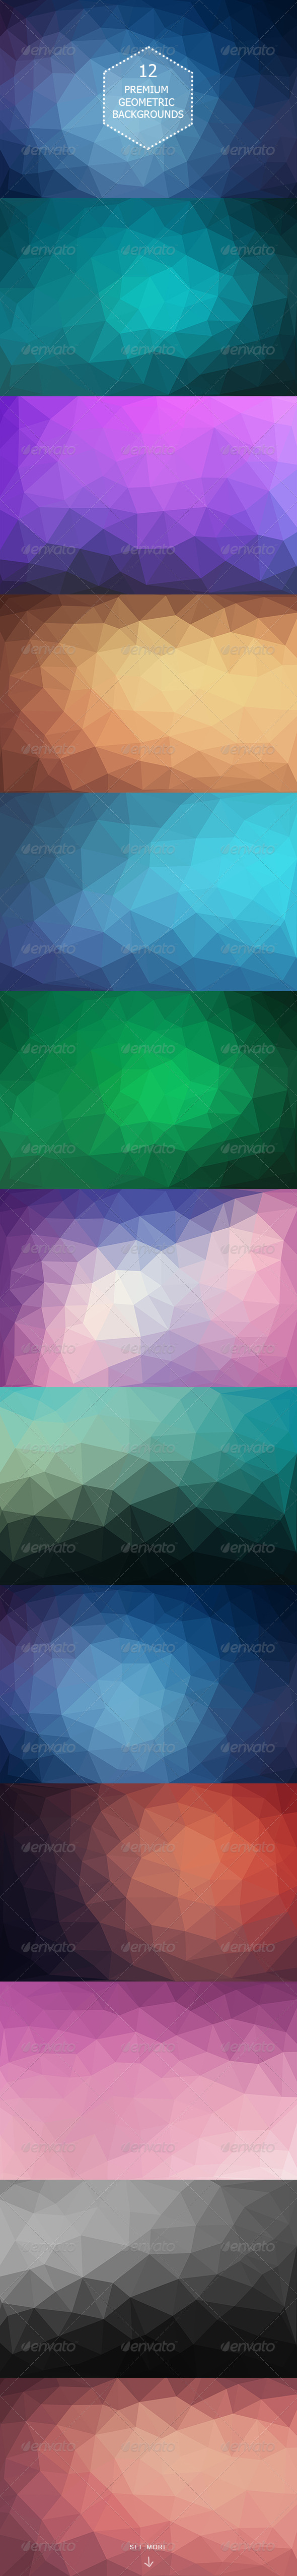 12 Modern Geometric Polygonal Backgrounds